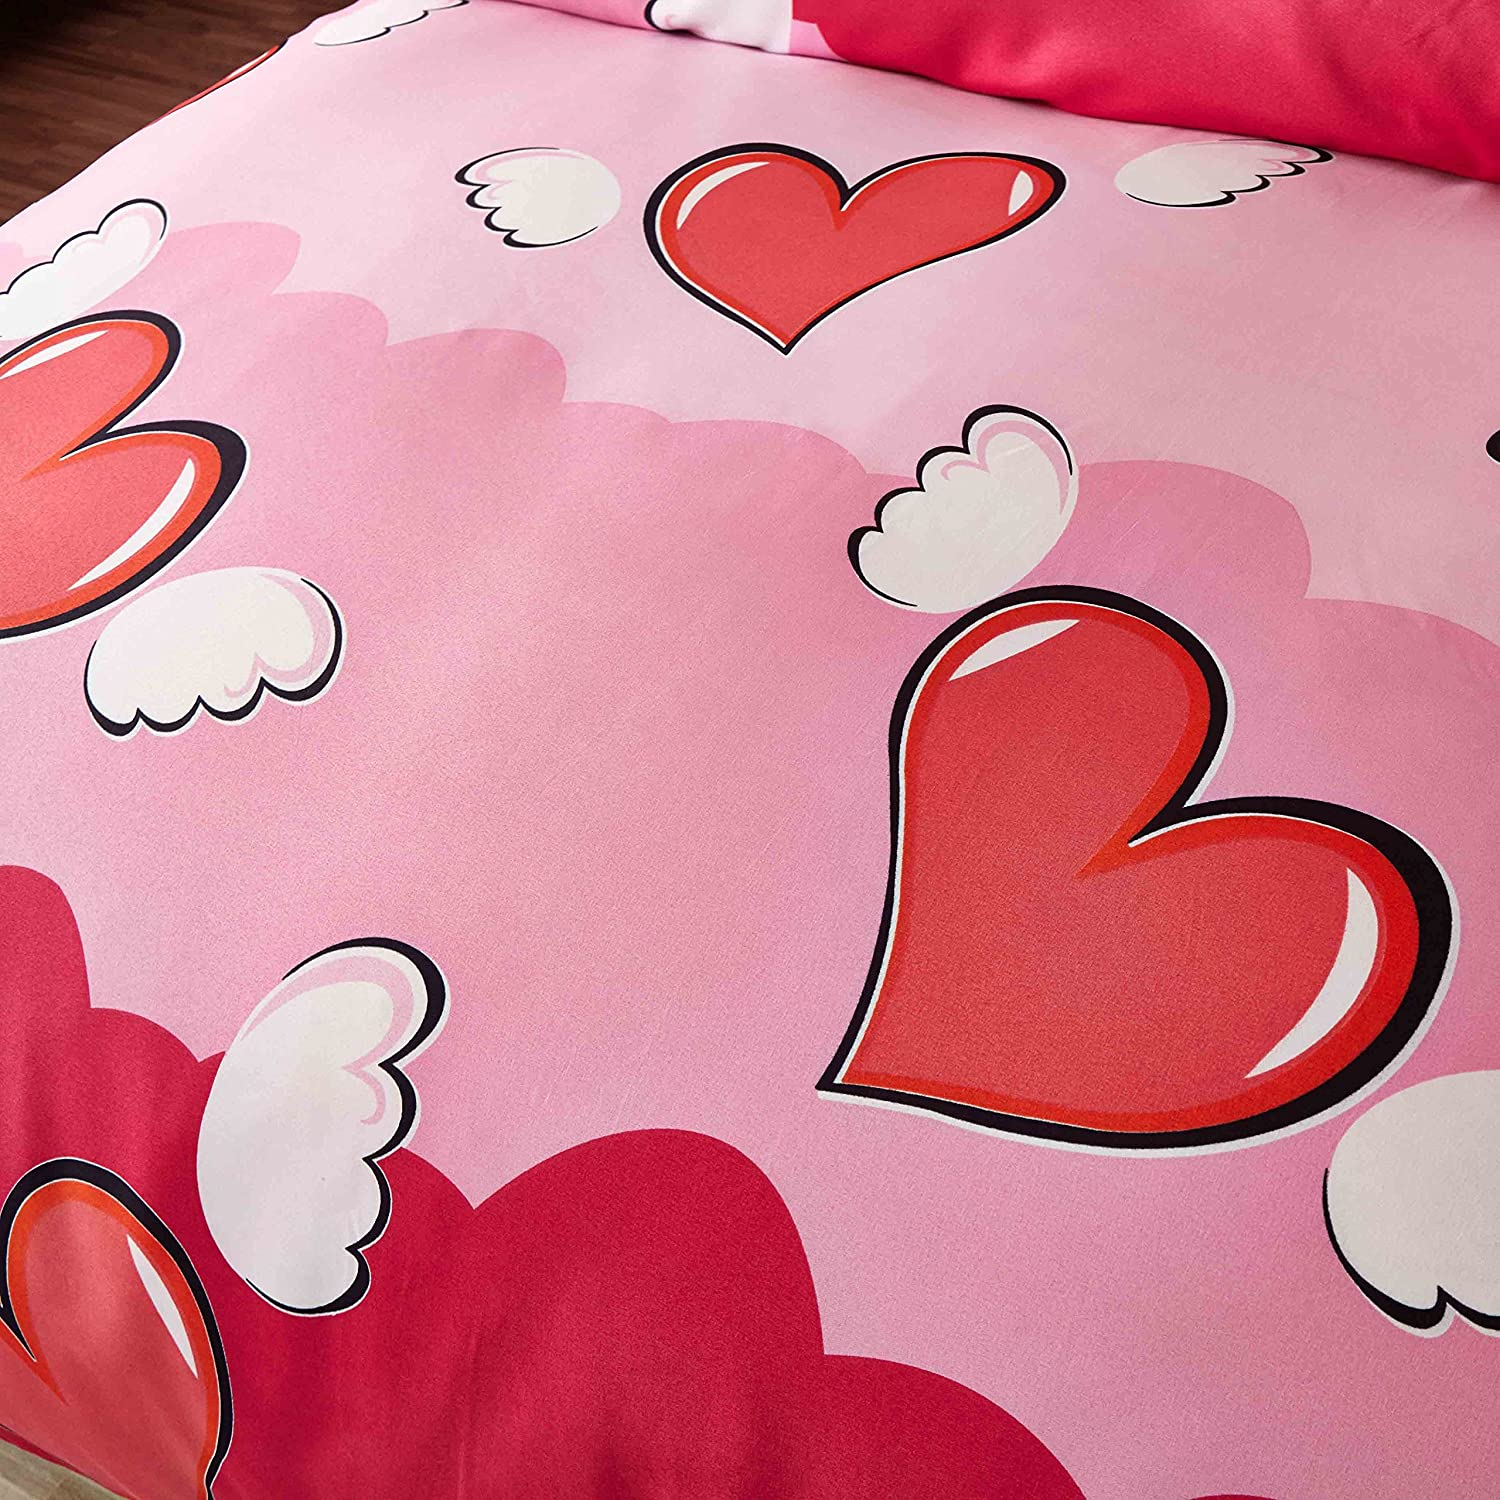 4pcs Bedding Sets Duvet Cover Fitted Bed Linen Pillowcase LZ Twin Full Queen No Comforter Natural Flower Lattice Angle Heart Love Design for Bedding Room (Angle Heart, Red, Full, Single Sheet) Nova